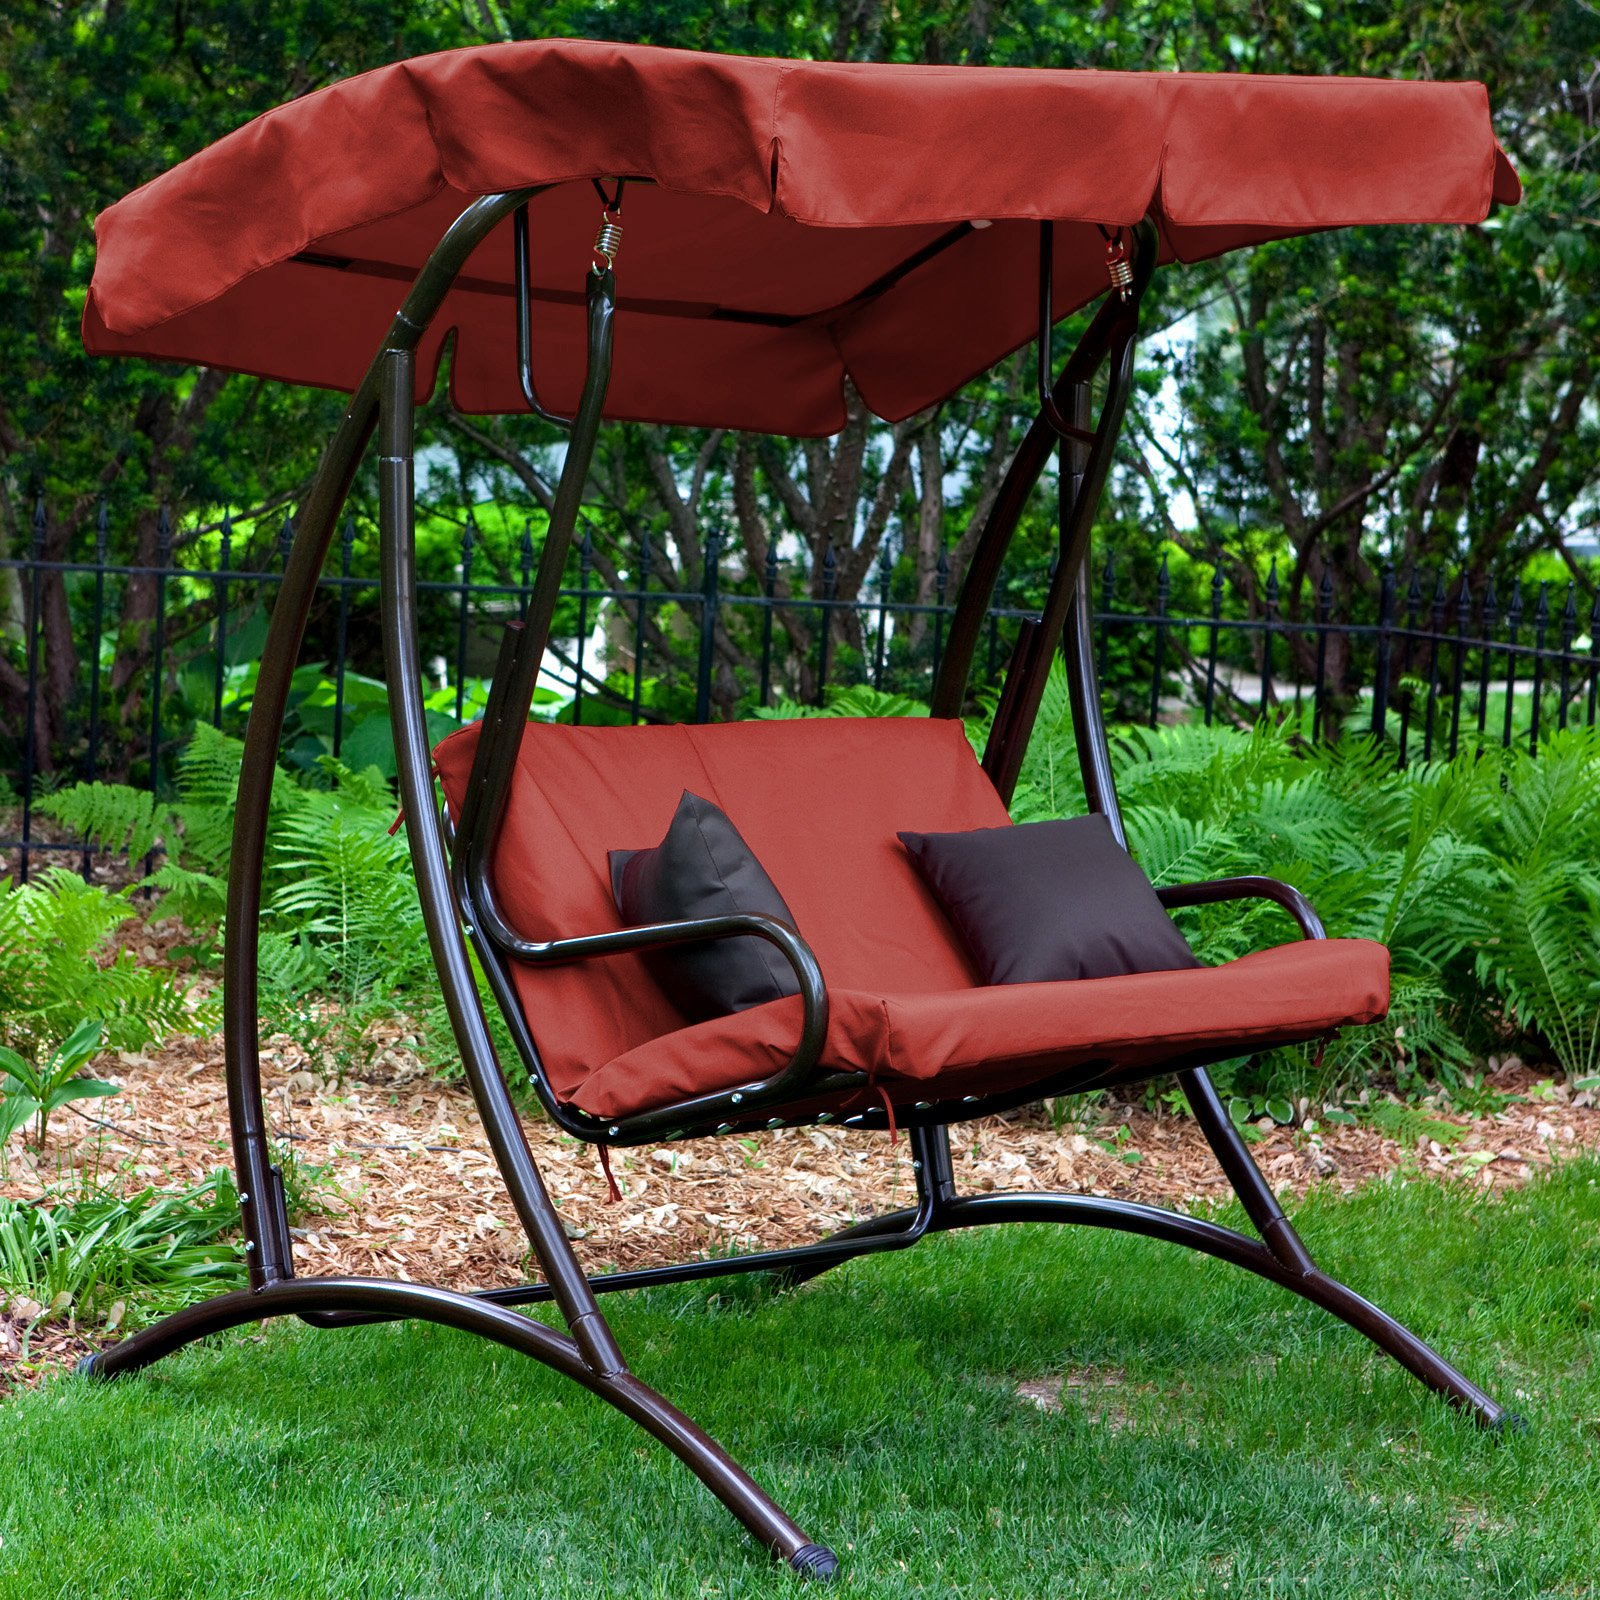 & Coral Coast Long Bay 2 Person Canopy Swing - Terra Cotta - Walmart.com